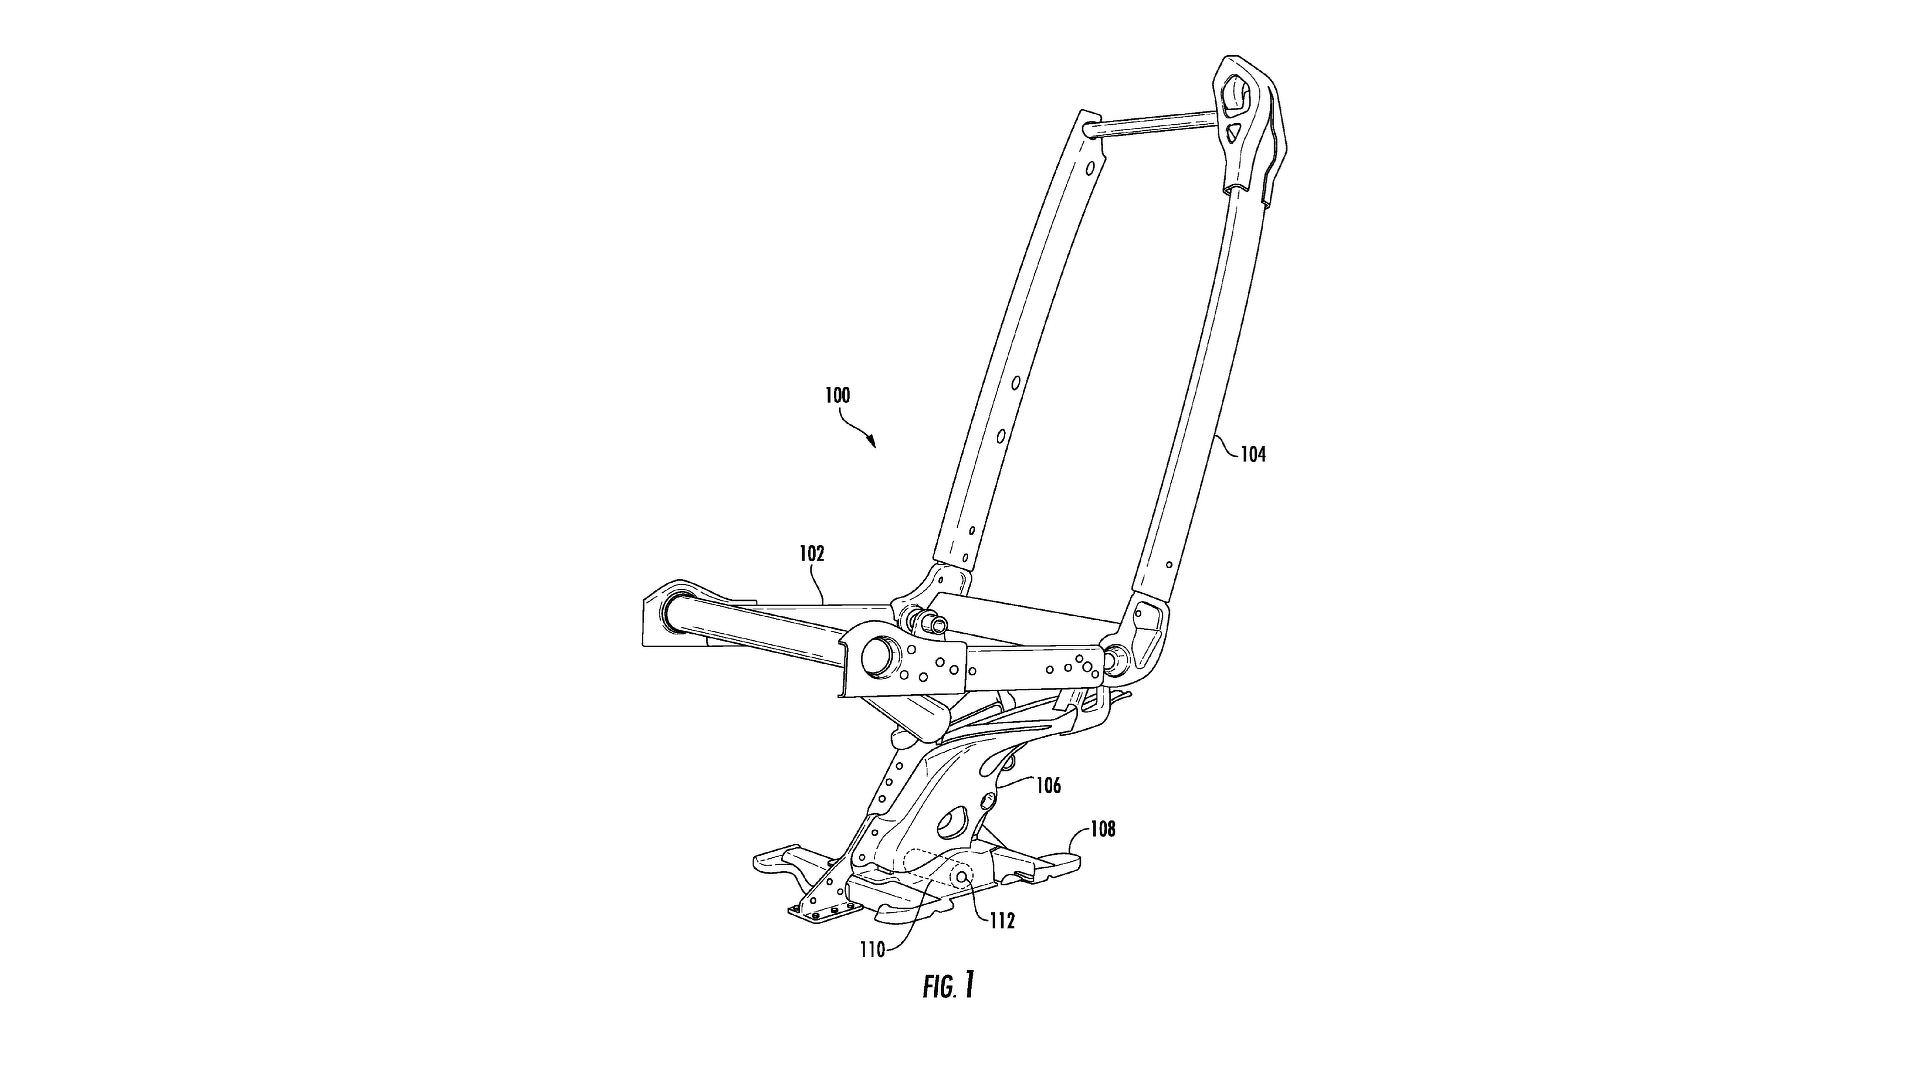 tesla-monopost-chair-patent